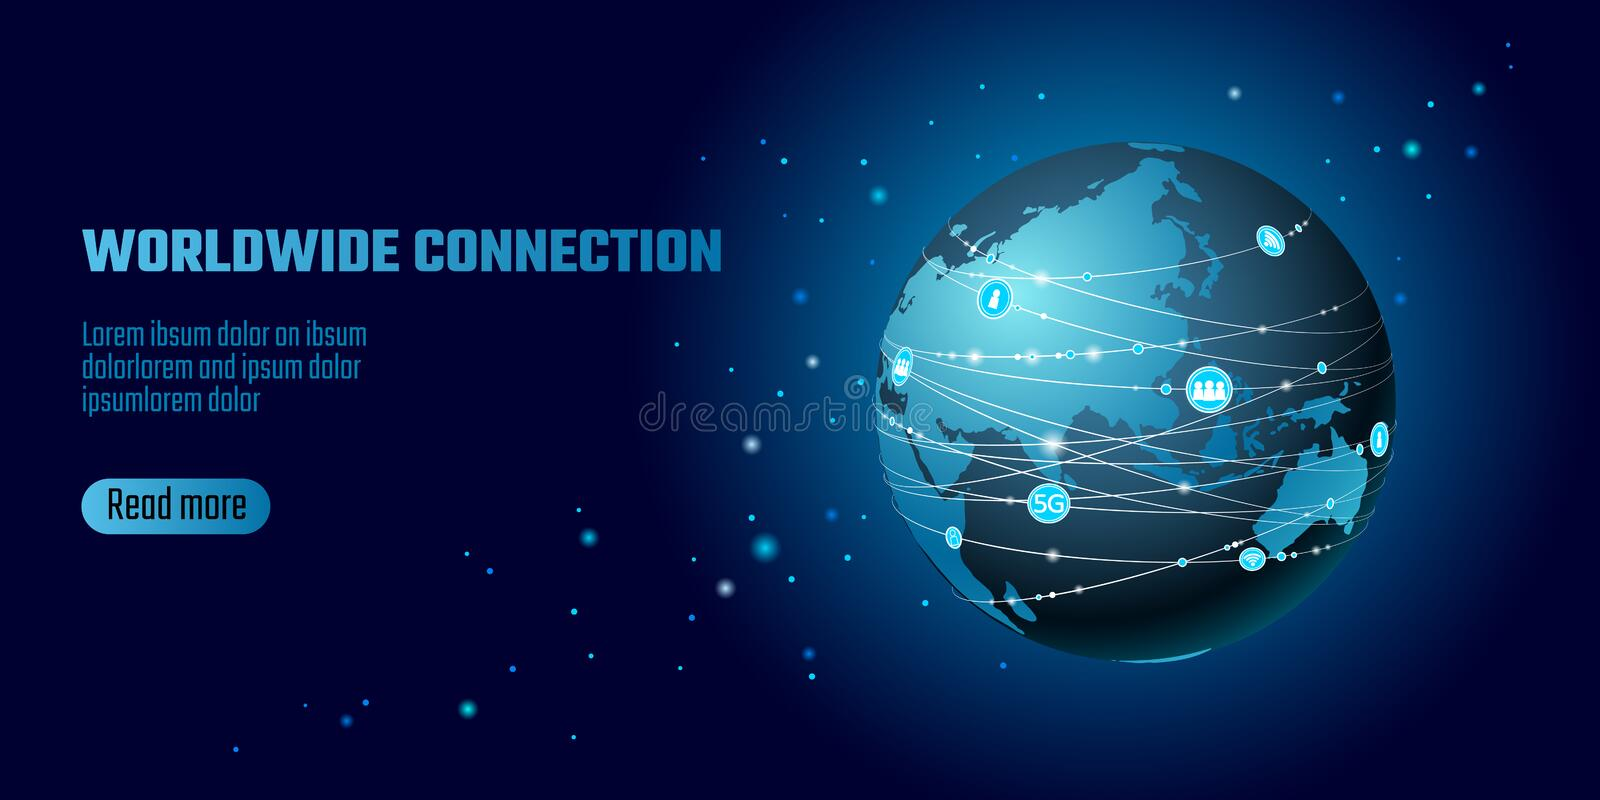 Global network connection. World map Asia continent point line worldwide information technology dat exchange business royalty free illustration